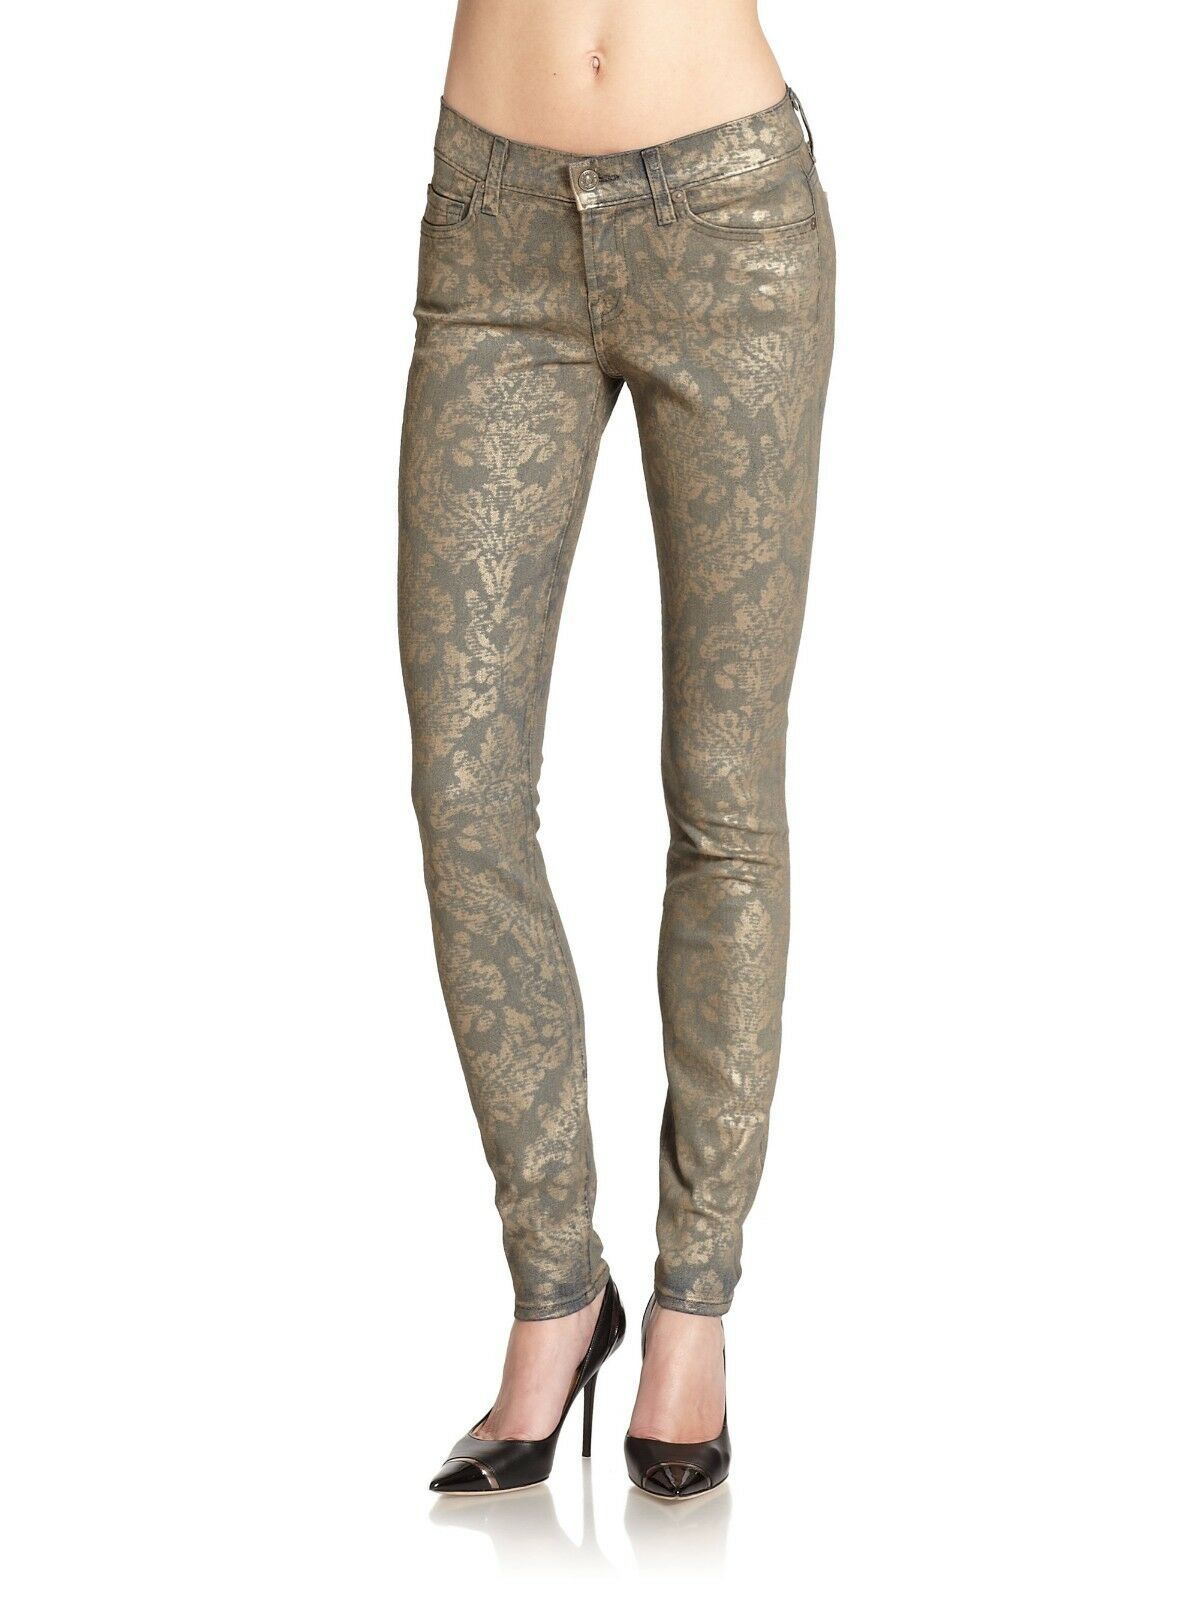 215 Womens 7 FOR ALL MANKIND THE SKINNY METALLIC BAROQUE JEANS Sz 29 gold Print